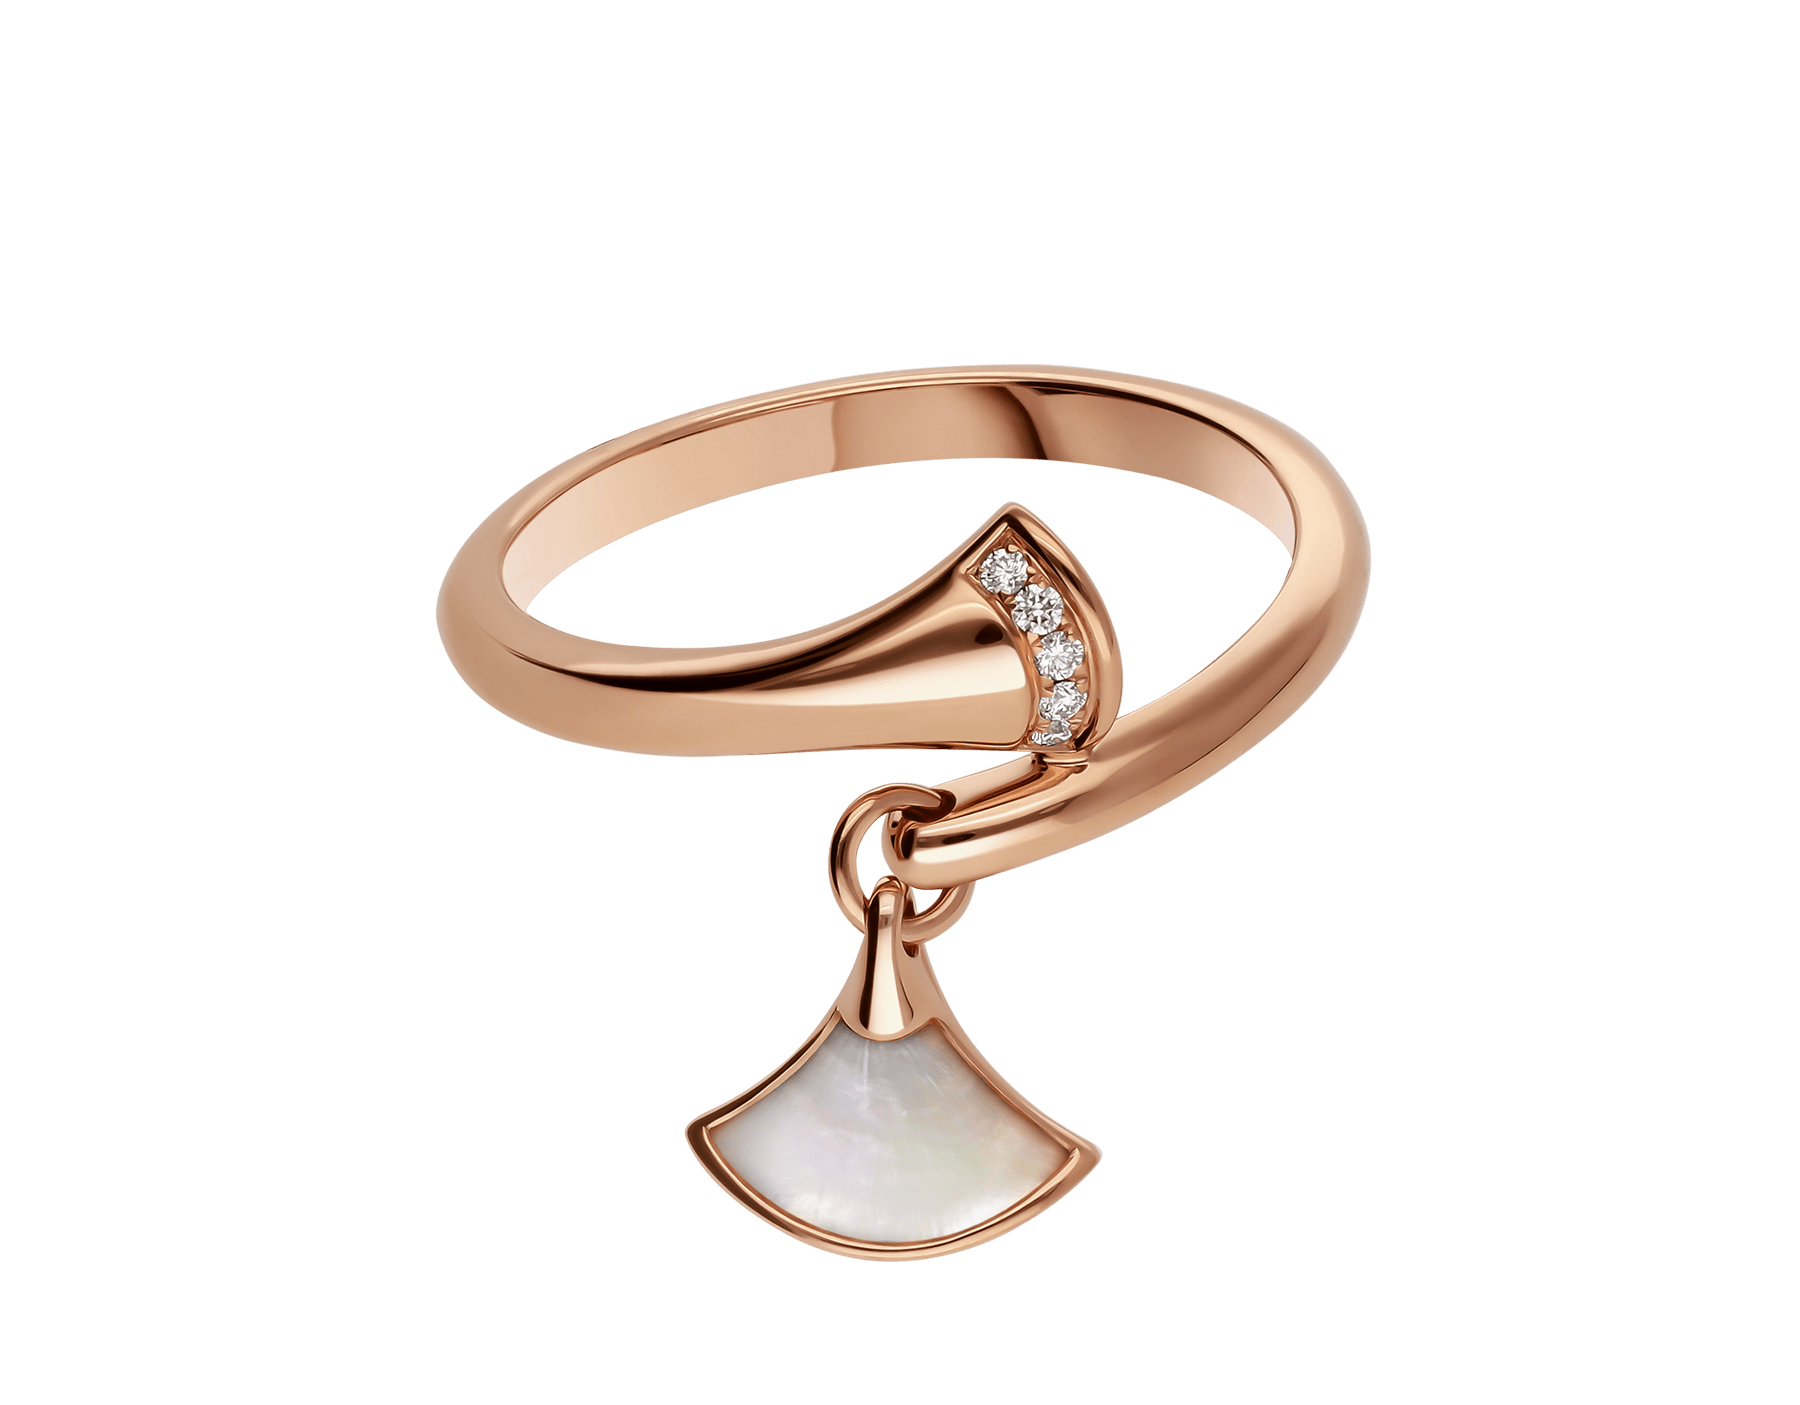 DIVAS' DREAM ring in 18 kt rose gold set with pavé diamonds and charm set with mother-of-pearl. AN857333 image 2